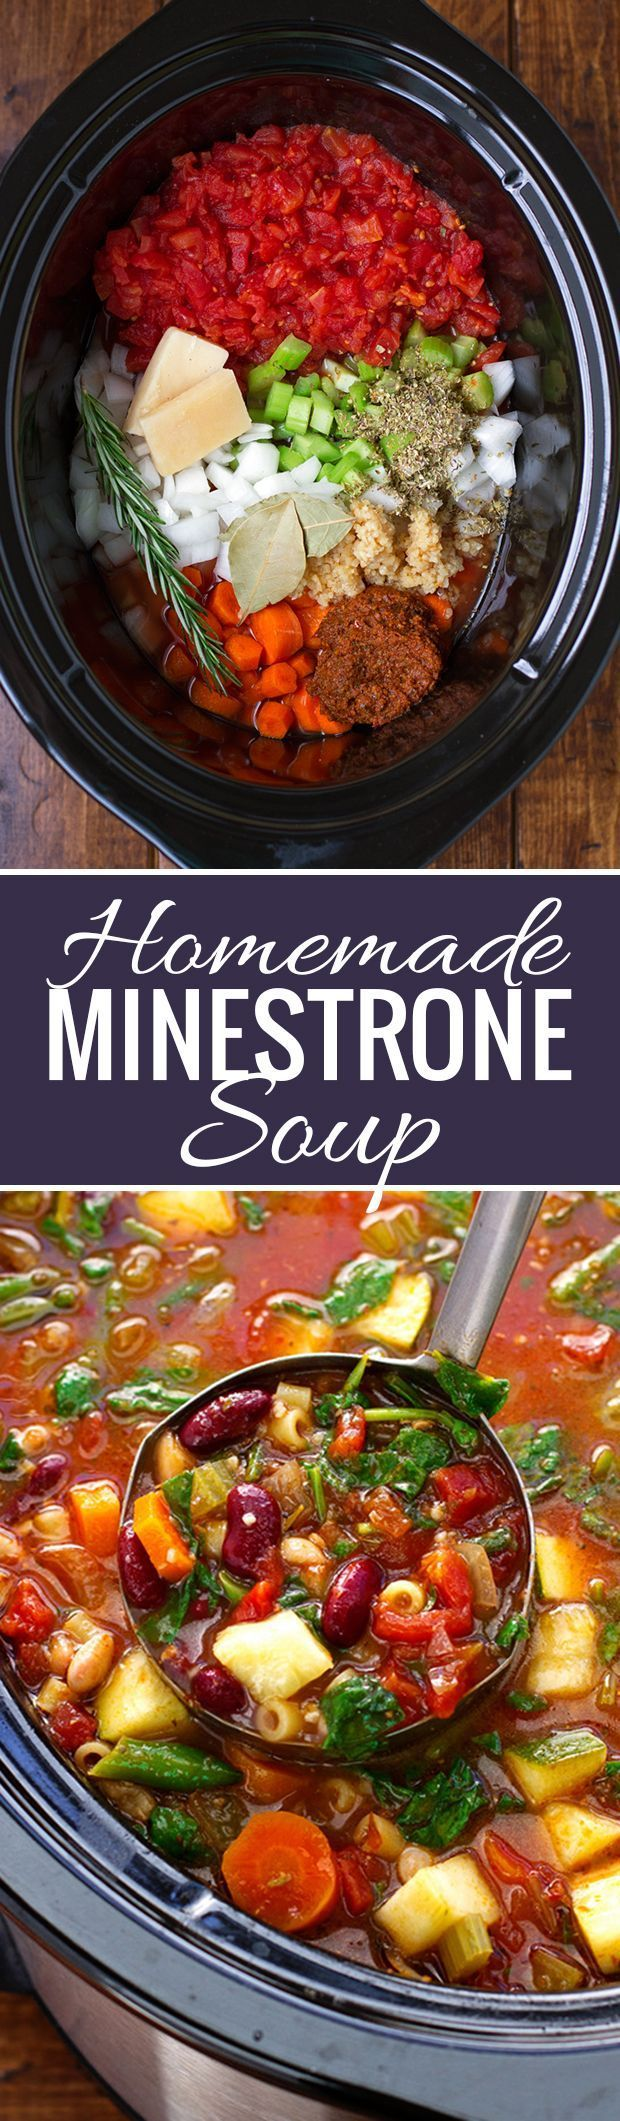 Homemade Minestrone Soup {Slow Cooker} eliminate the cheese and pasta for Paleo| LIttlespicejar.com